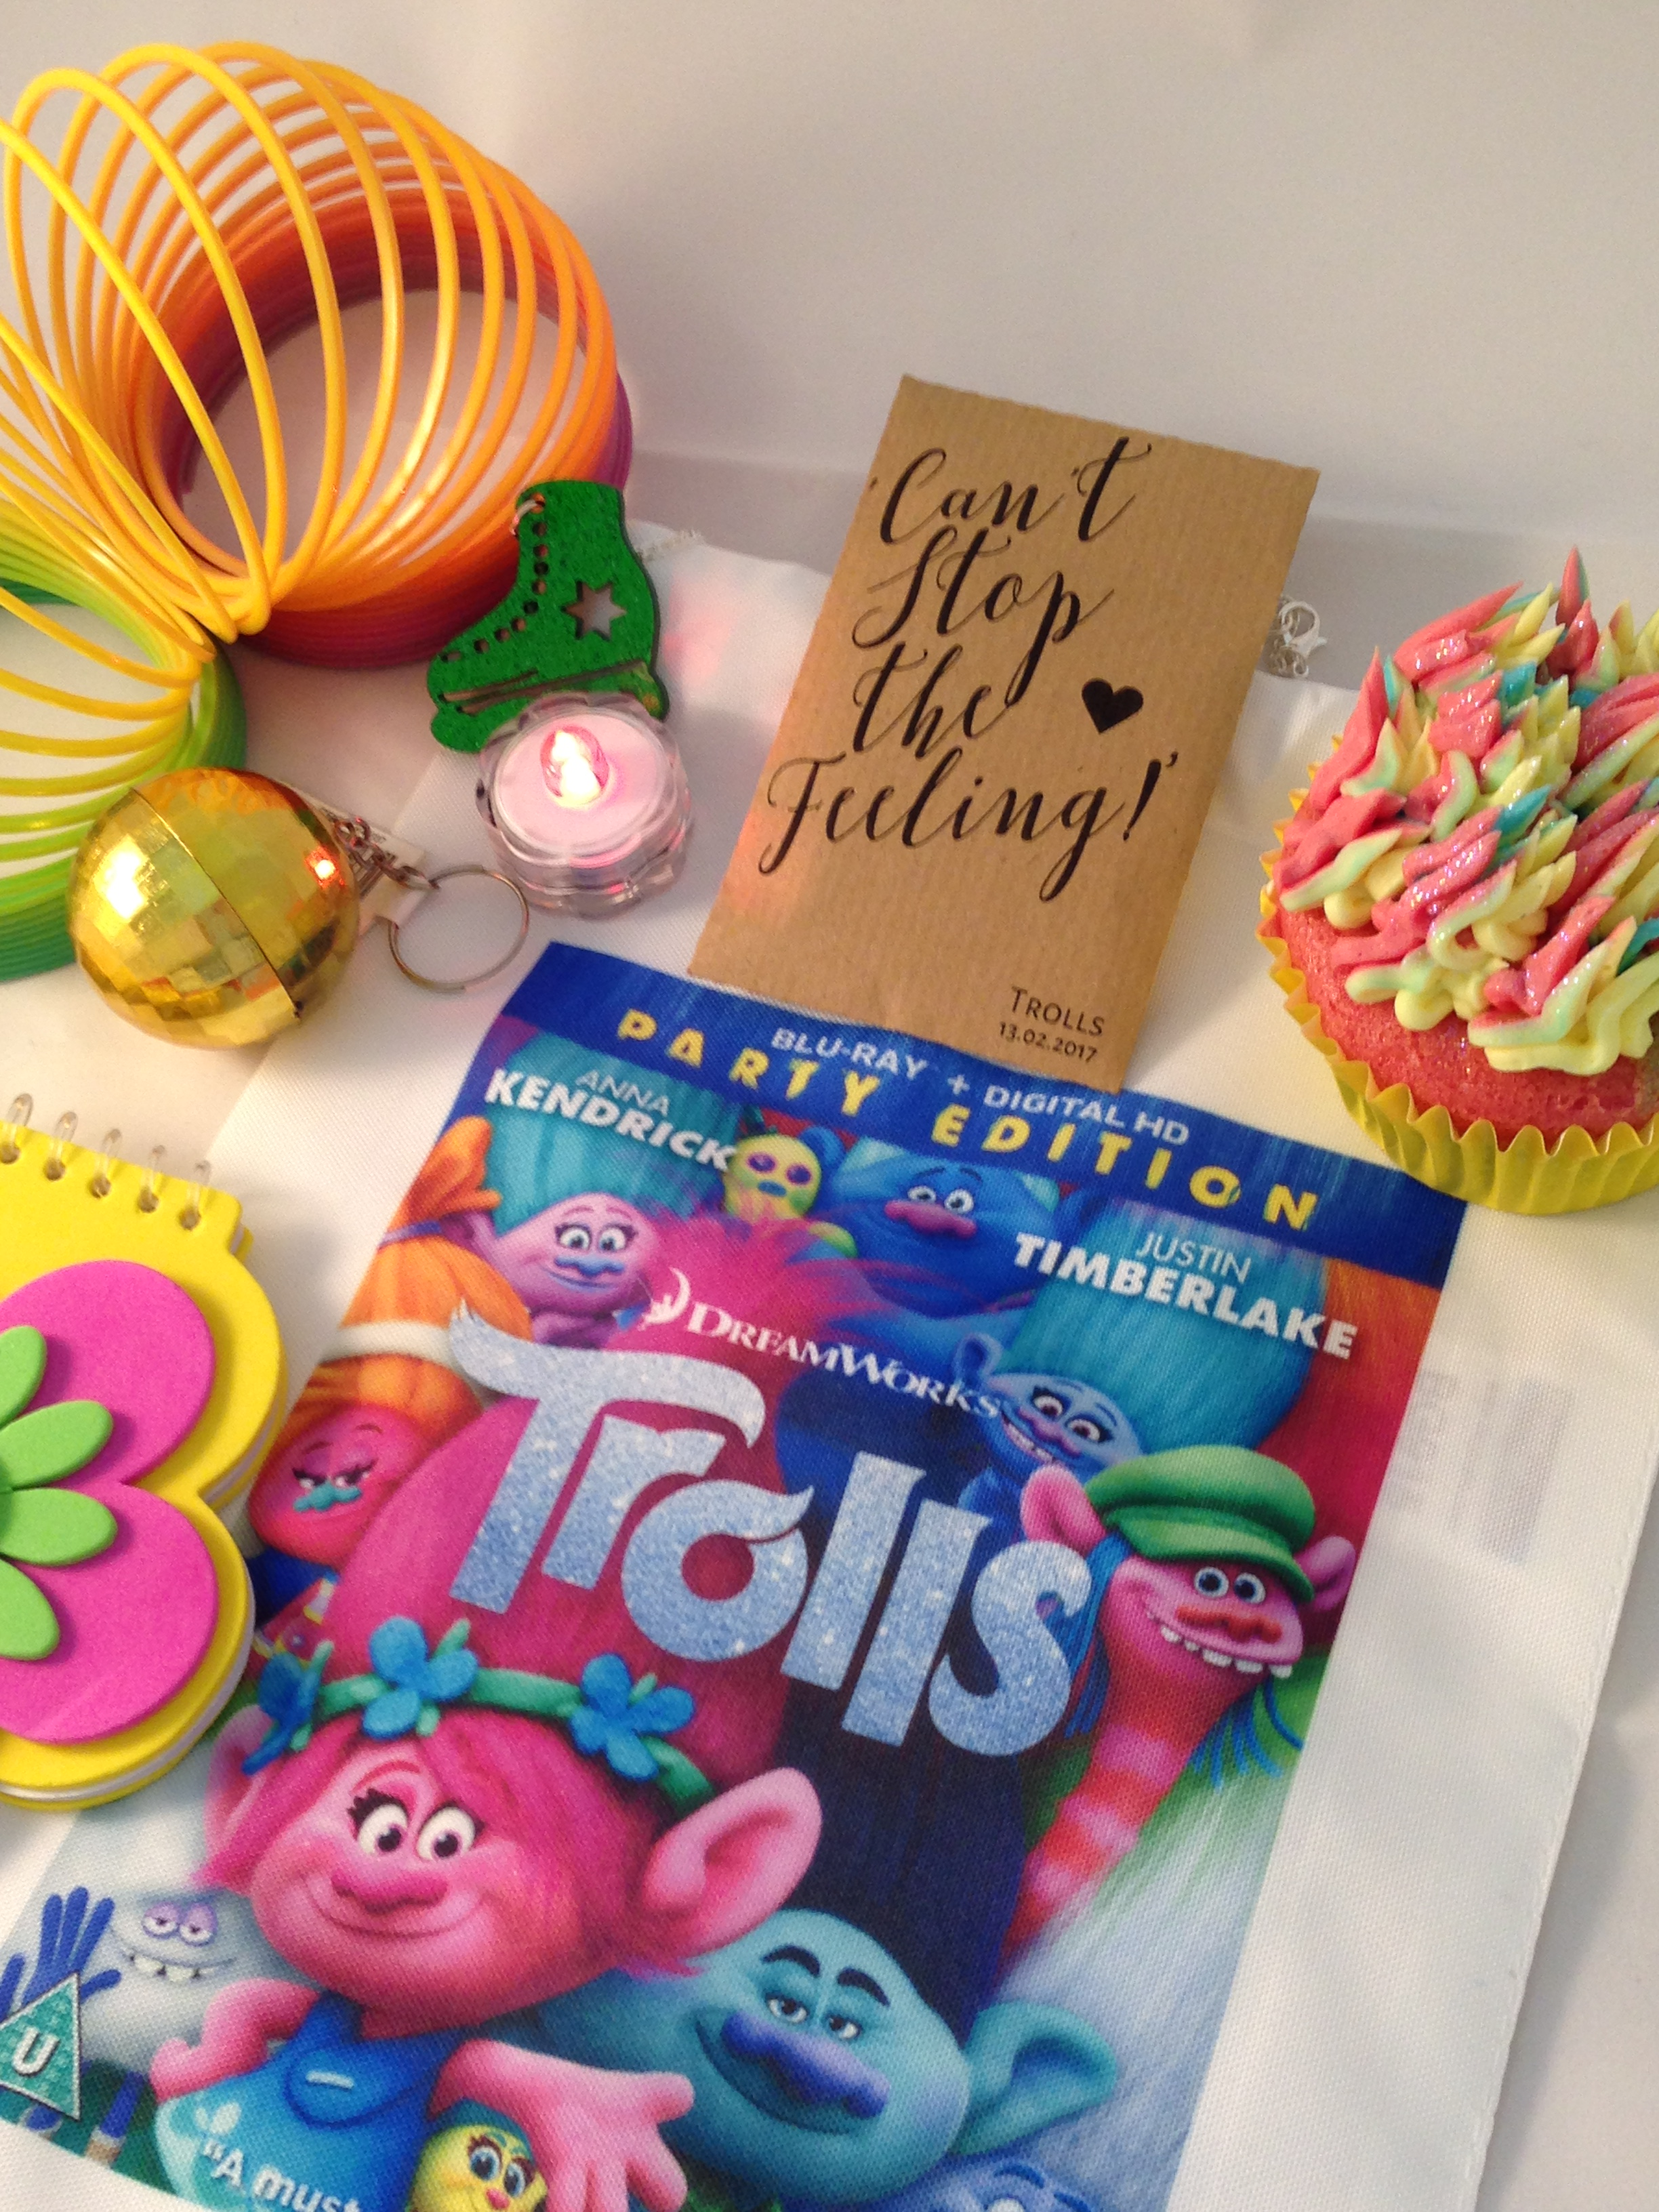 A spread of toys and trinkets given to children in a goodie bag at a screening of TROLLS at the Prince Charles cinema. There is a Trolls programme booklet, a colourful flower notepad, a slinky, a mini glitterball, a packet of seeds, and a glitter cupcake.